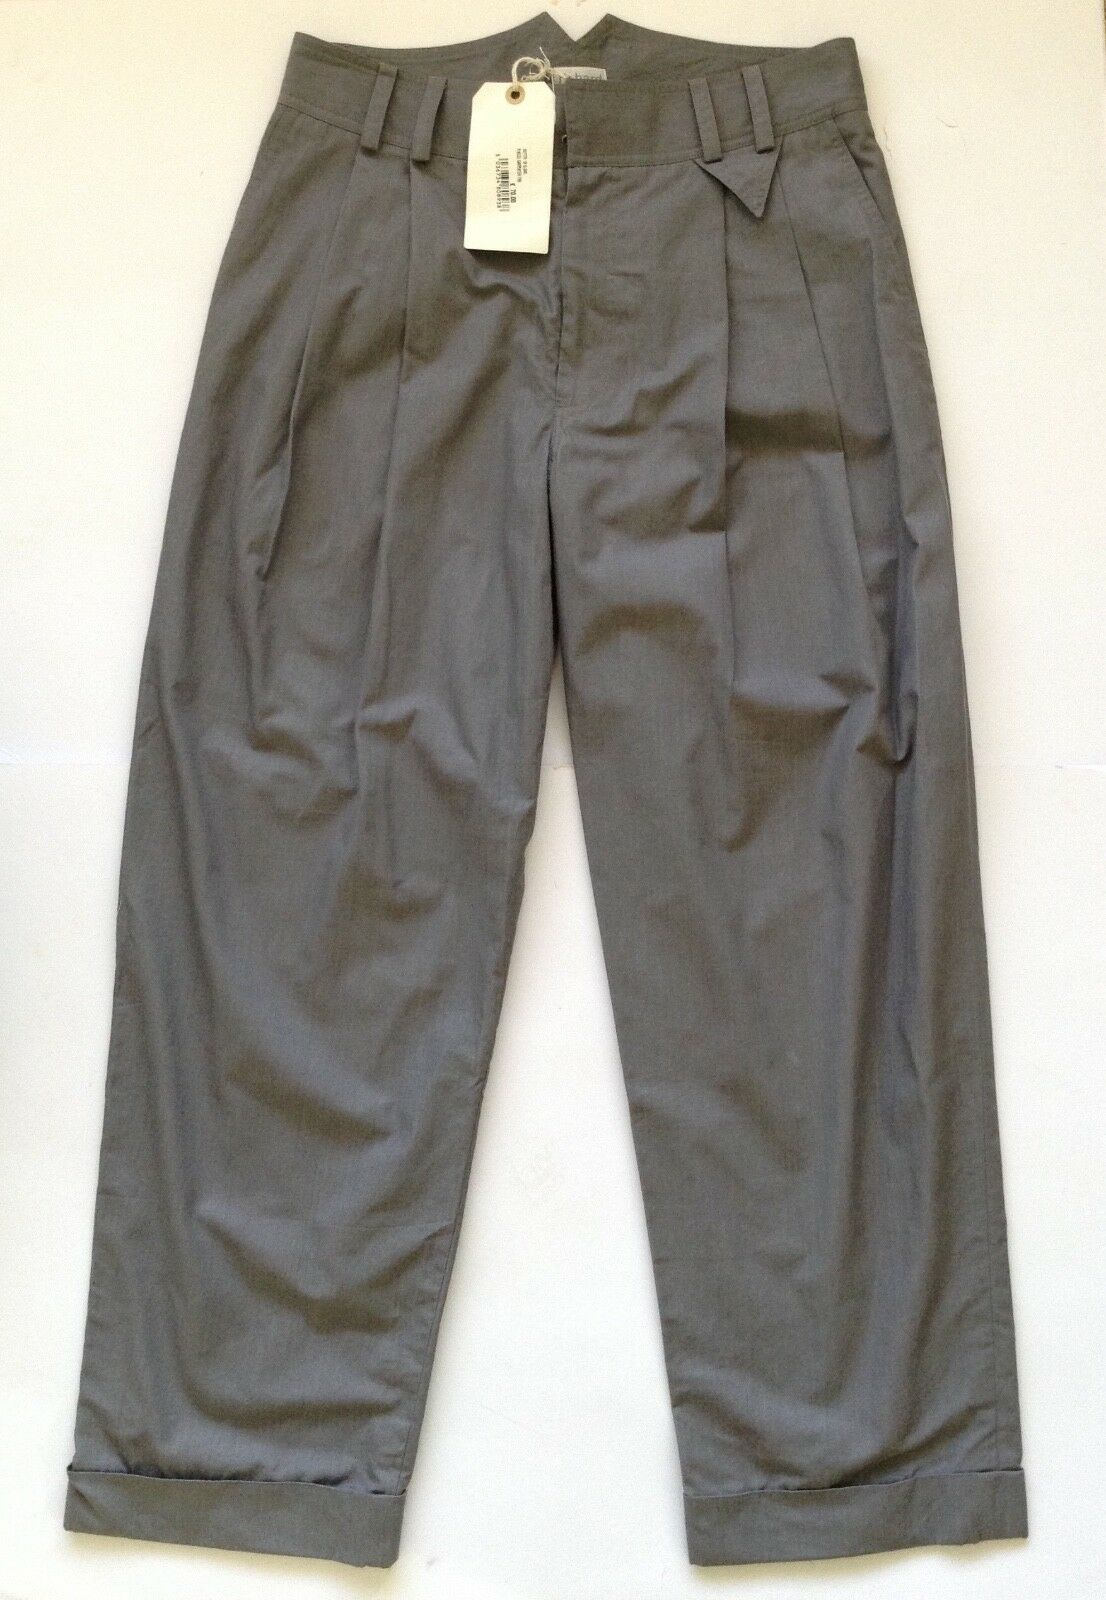 RICHARD NICOLL LADIES  GREY PLEATED TROUSERS SIZE 12 40